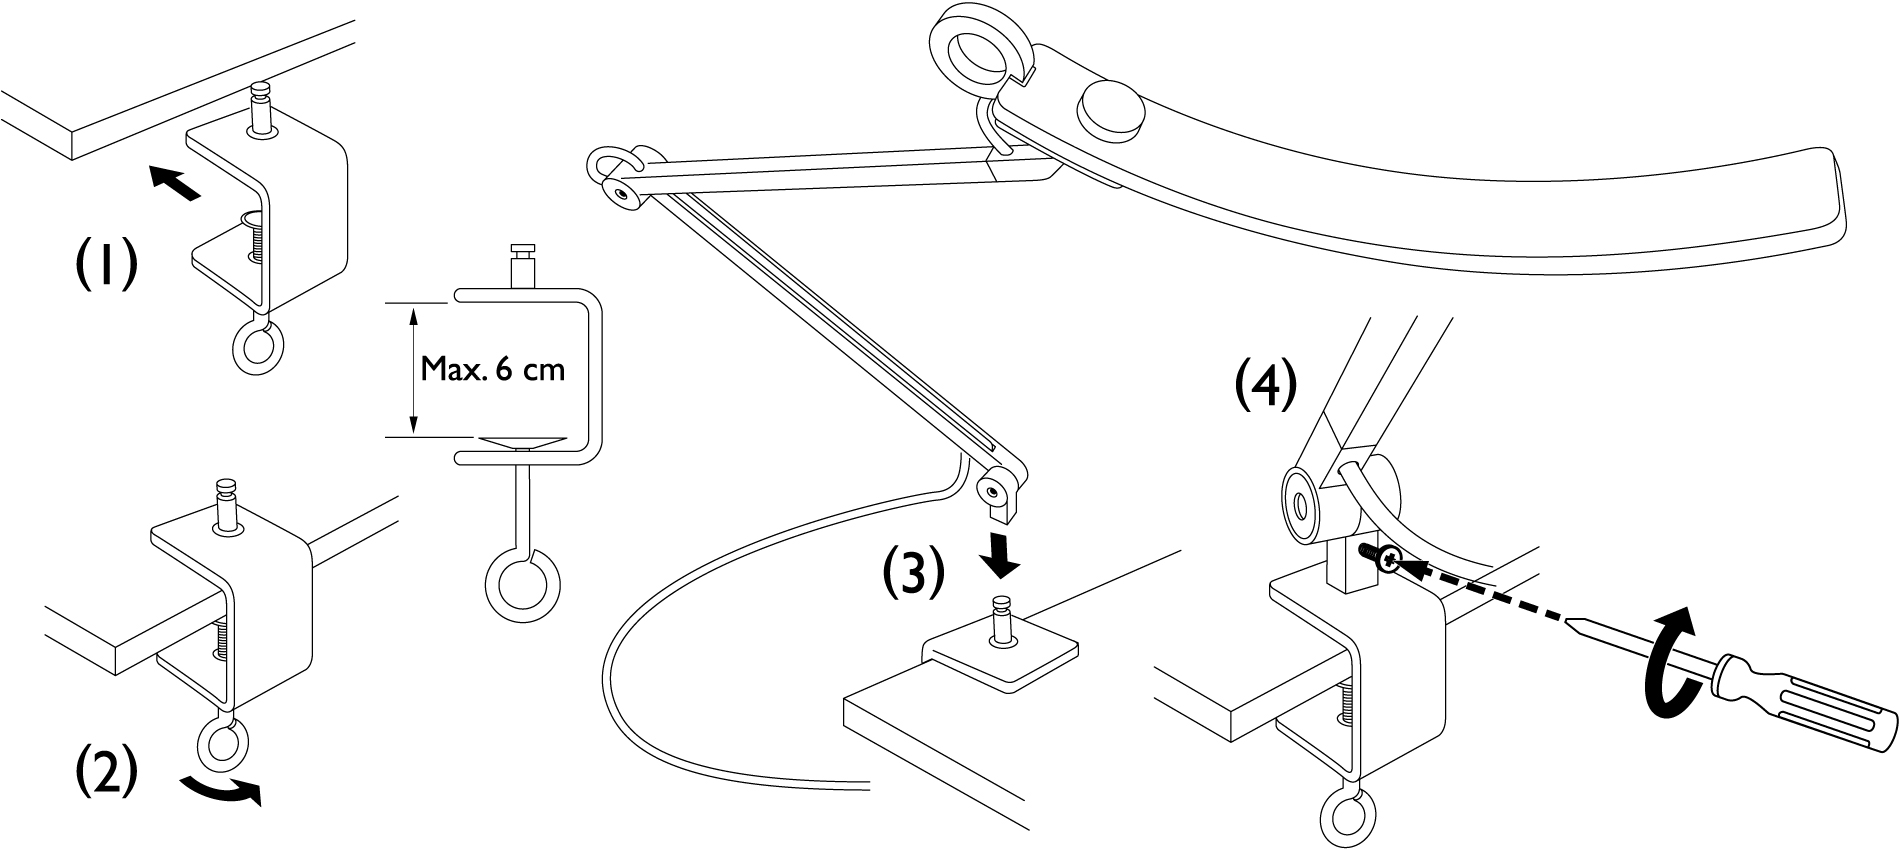 WiT desk clamp installation instruction